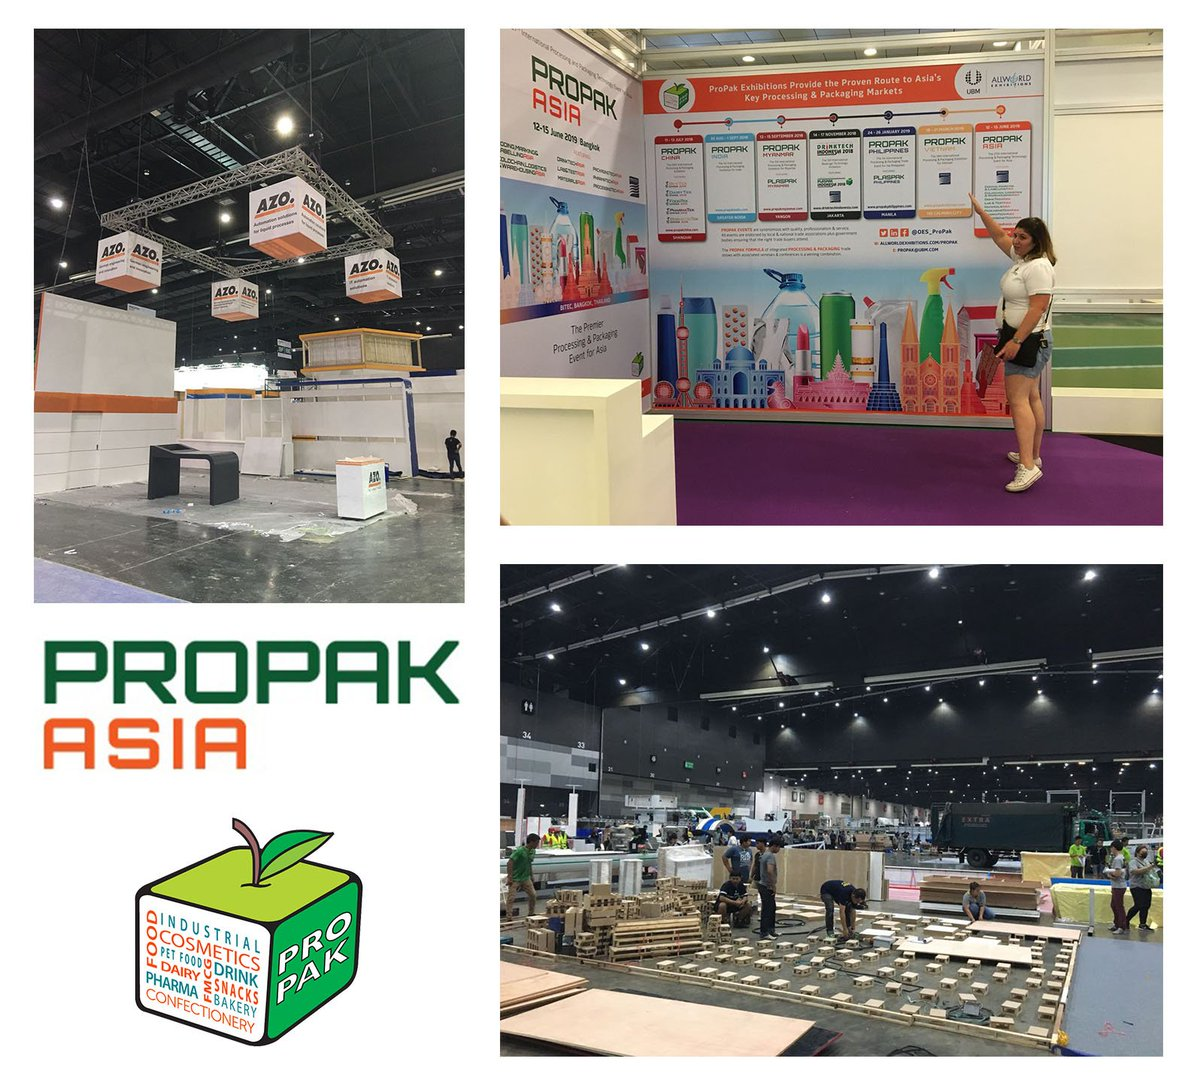 test Twitter Media - ProPak Asia build up is underway at BITEC! Be there from 13 - 16 June for all things Processing & Packaging #propak #propakasia #propakasia2018 #bitec #propakbuildup #seeyouthere https://t.co/GatrjUZY1m